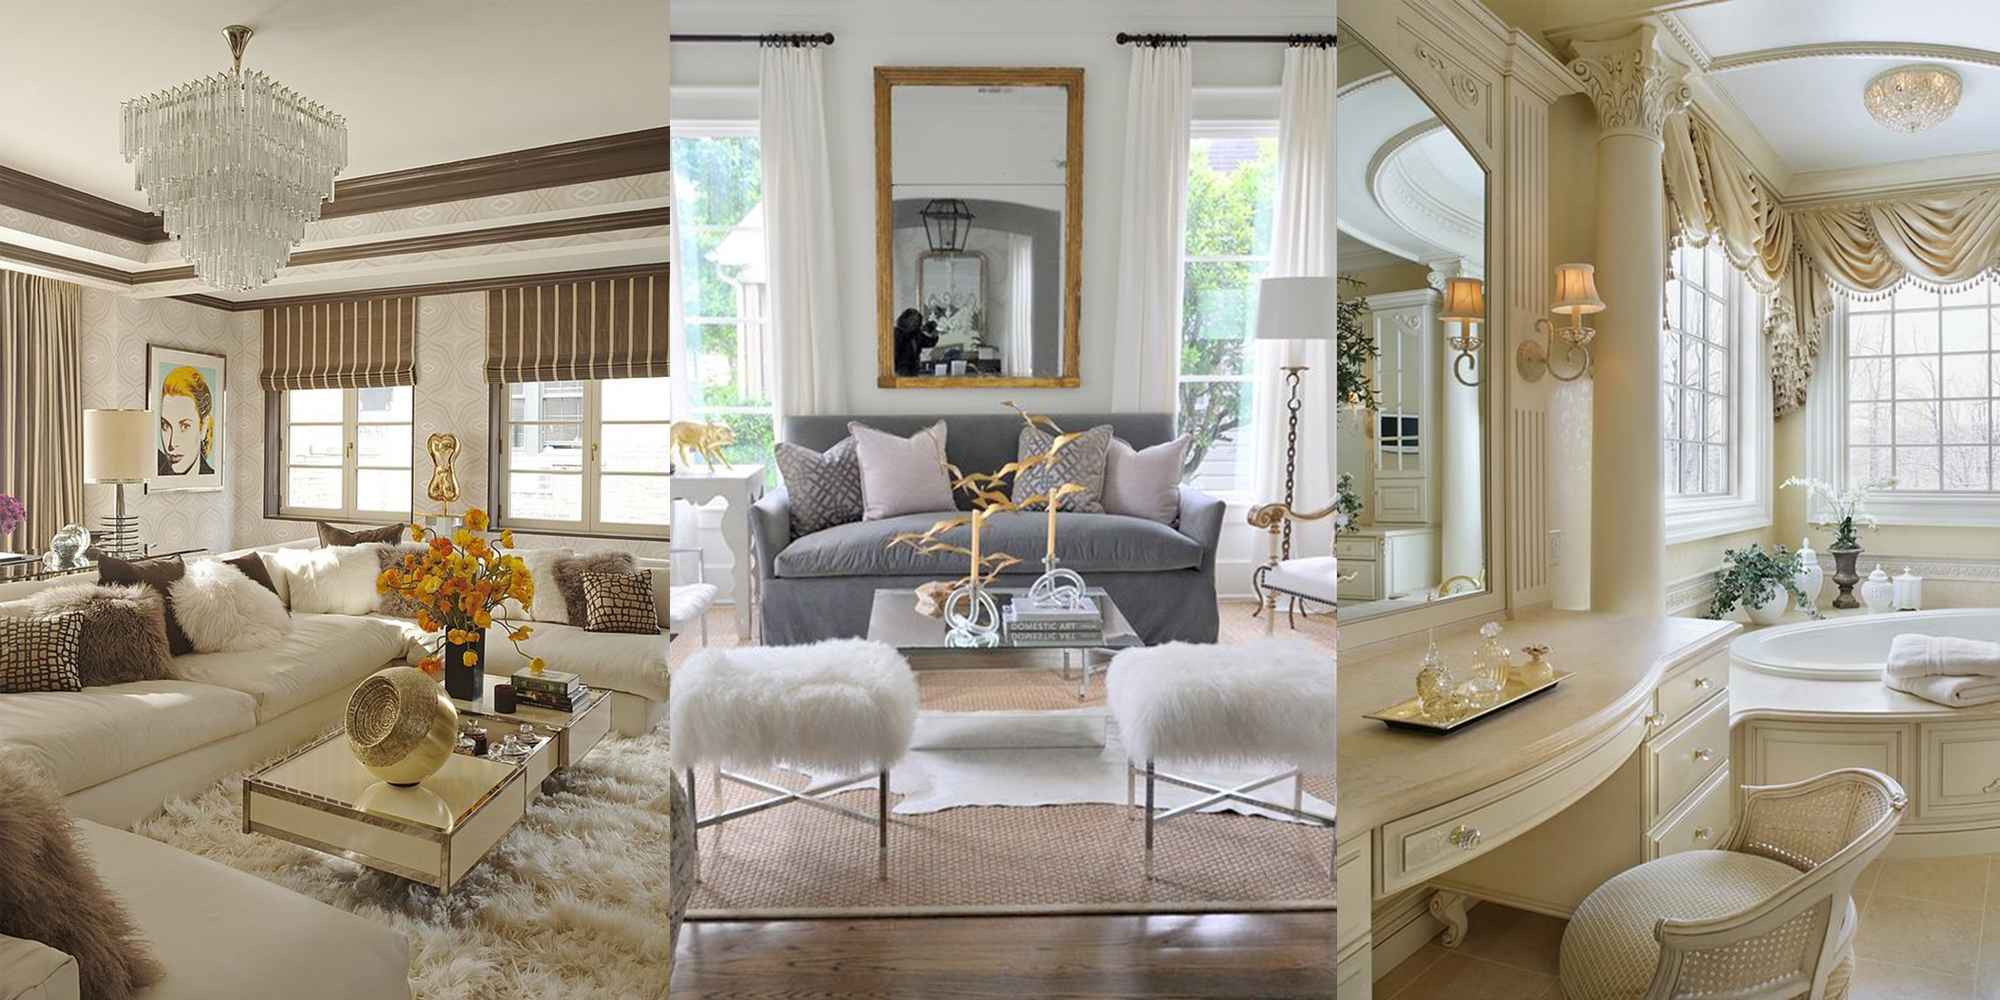 Pinterest Deco Interieur Glam Interior Design Inspiration To Take From Pinterest